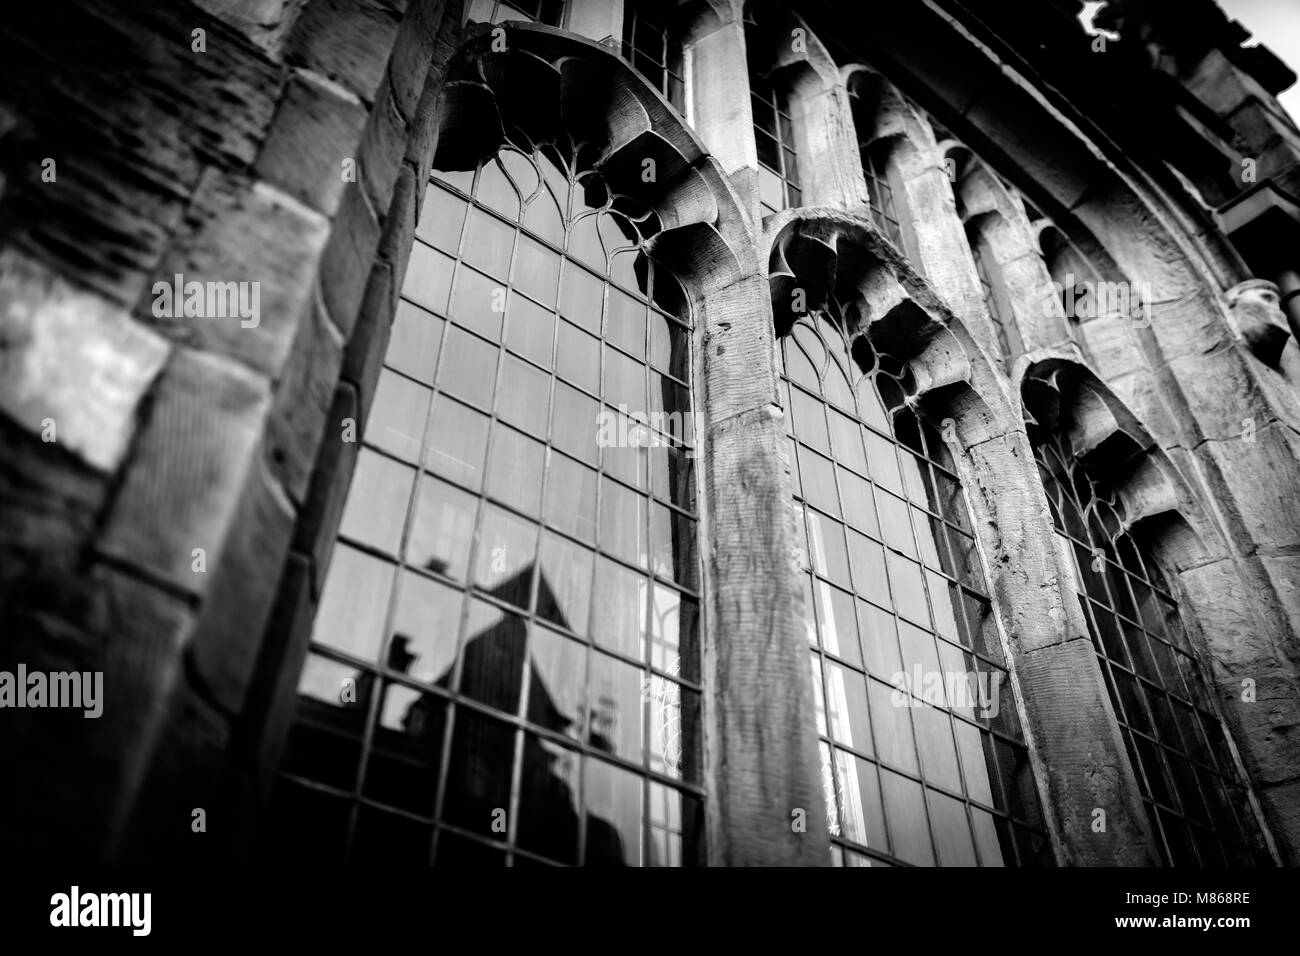 Historic Gothic Leaded And Decorative Arched Windows In An Ancient Church Demonstrating Tradional Medieval Architecture